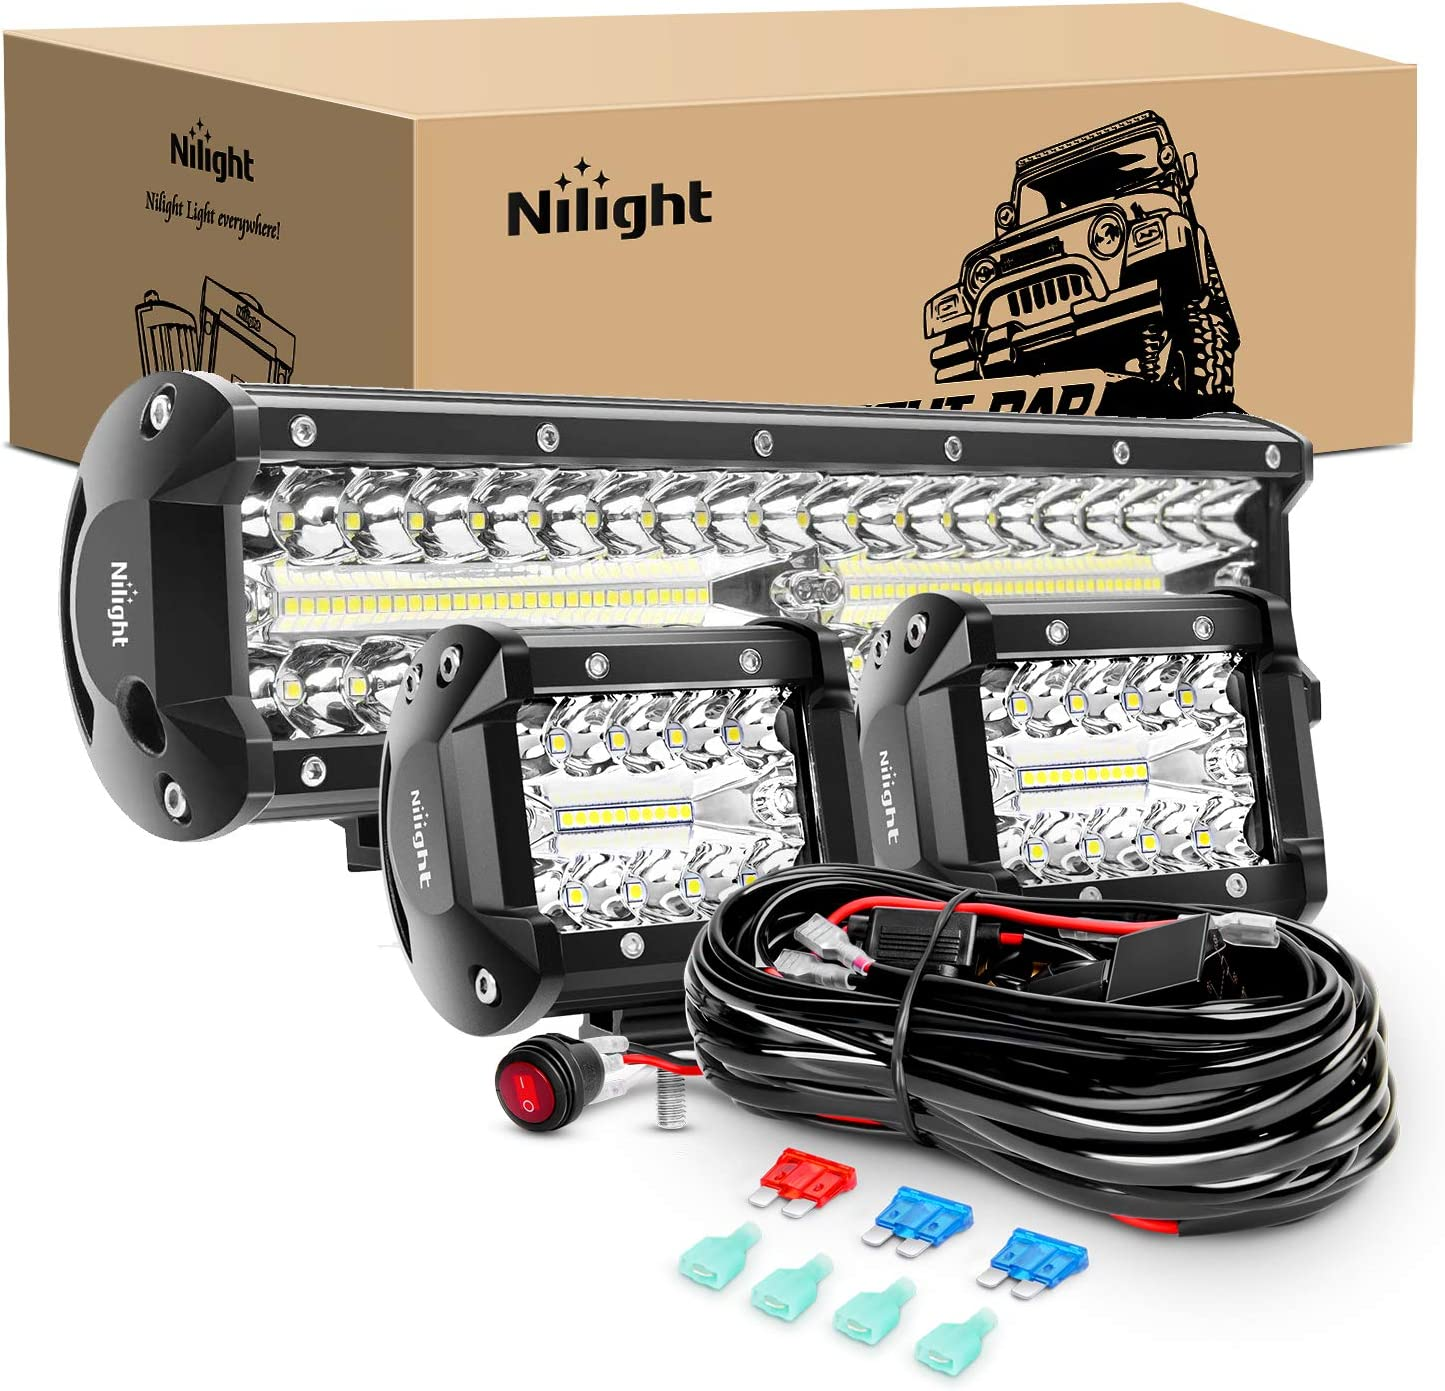 Nilight ZH414 Bar Set, 12 inch 300W Combo Work Driving Lamp, 2 Pcs 4 inch 60 W Triple Row Flood Spot LED with Wiring Harness for Off Road ATV Boat Lighting, 2 Year Warranty